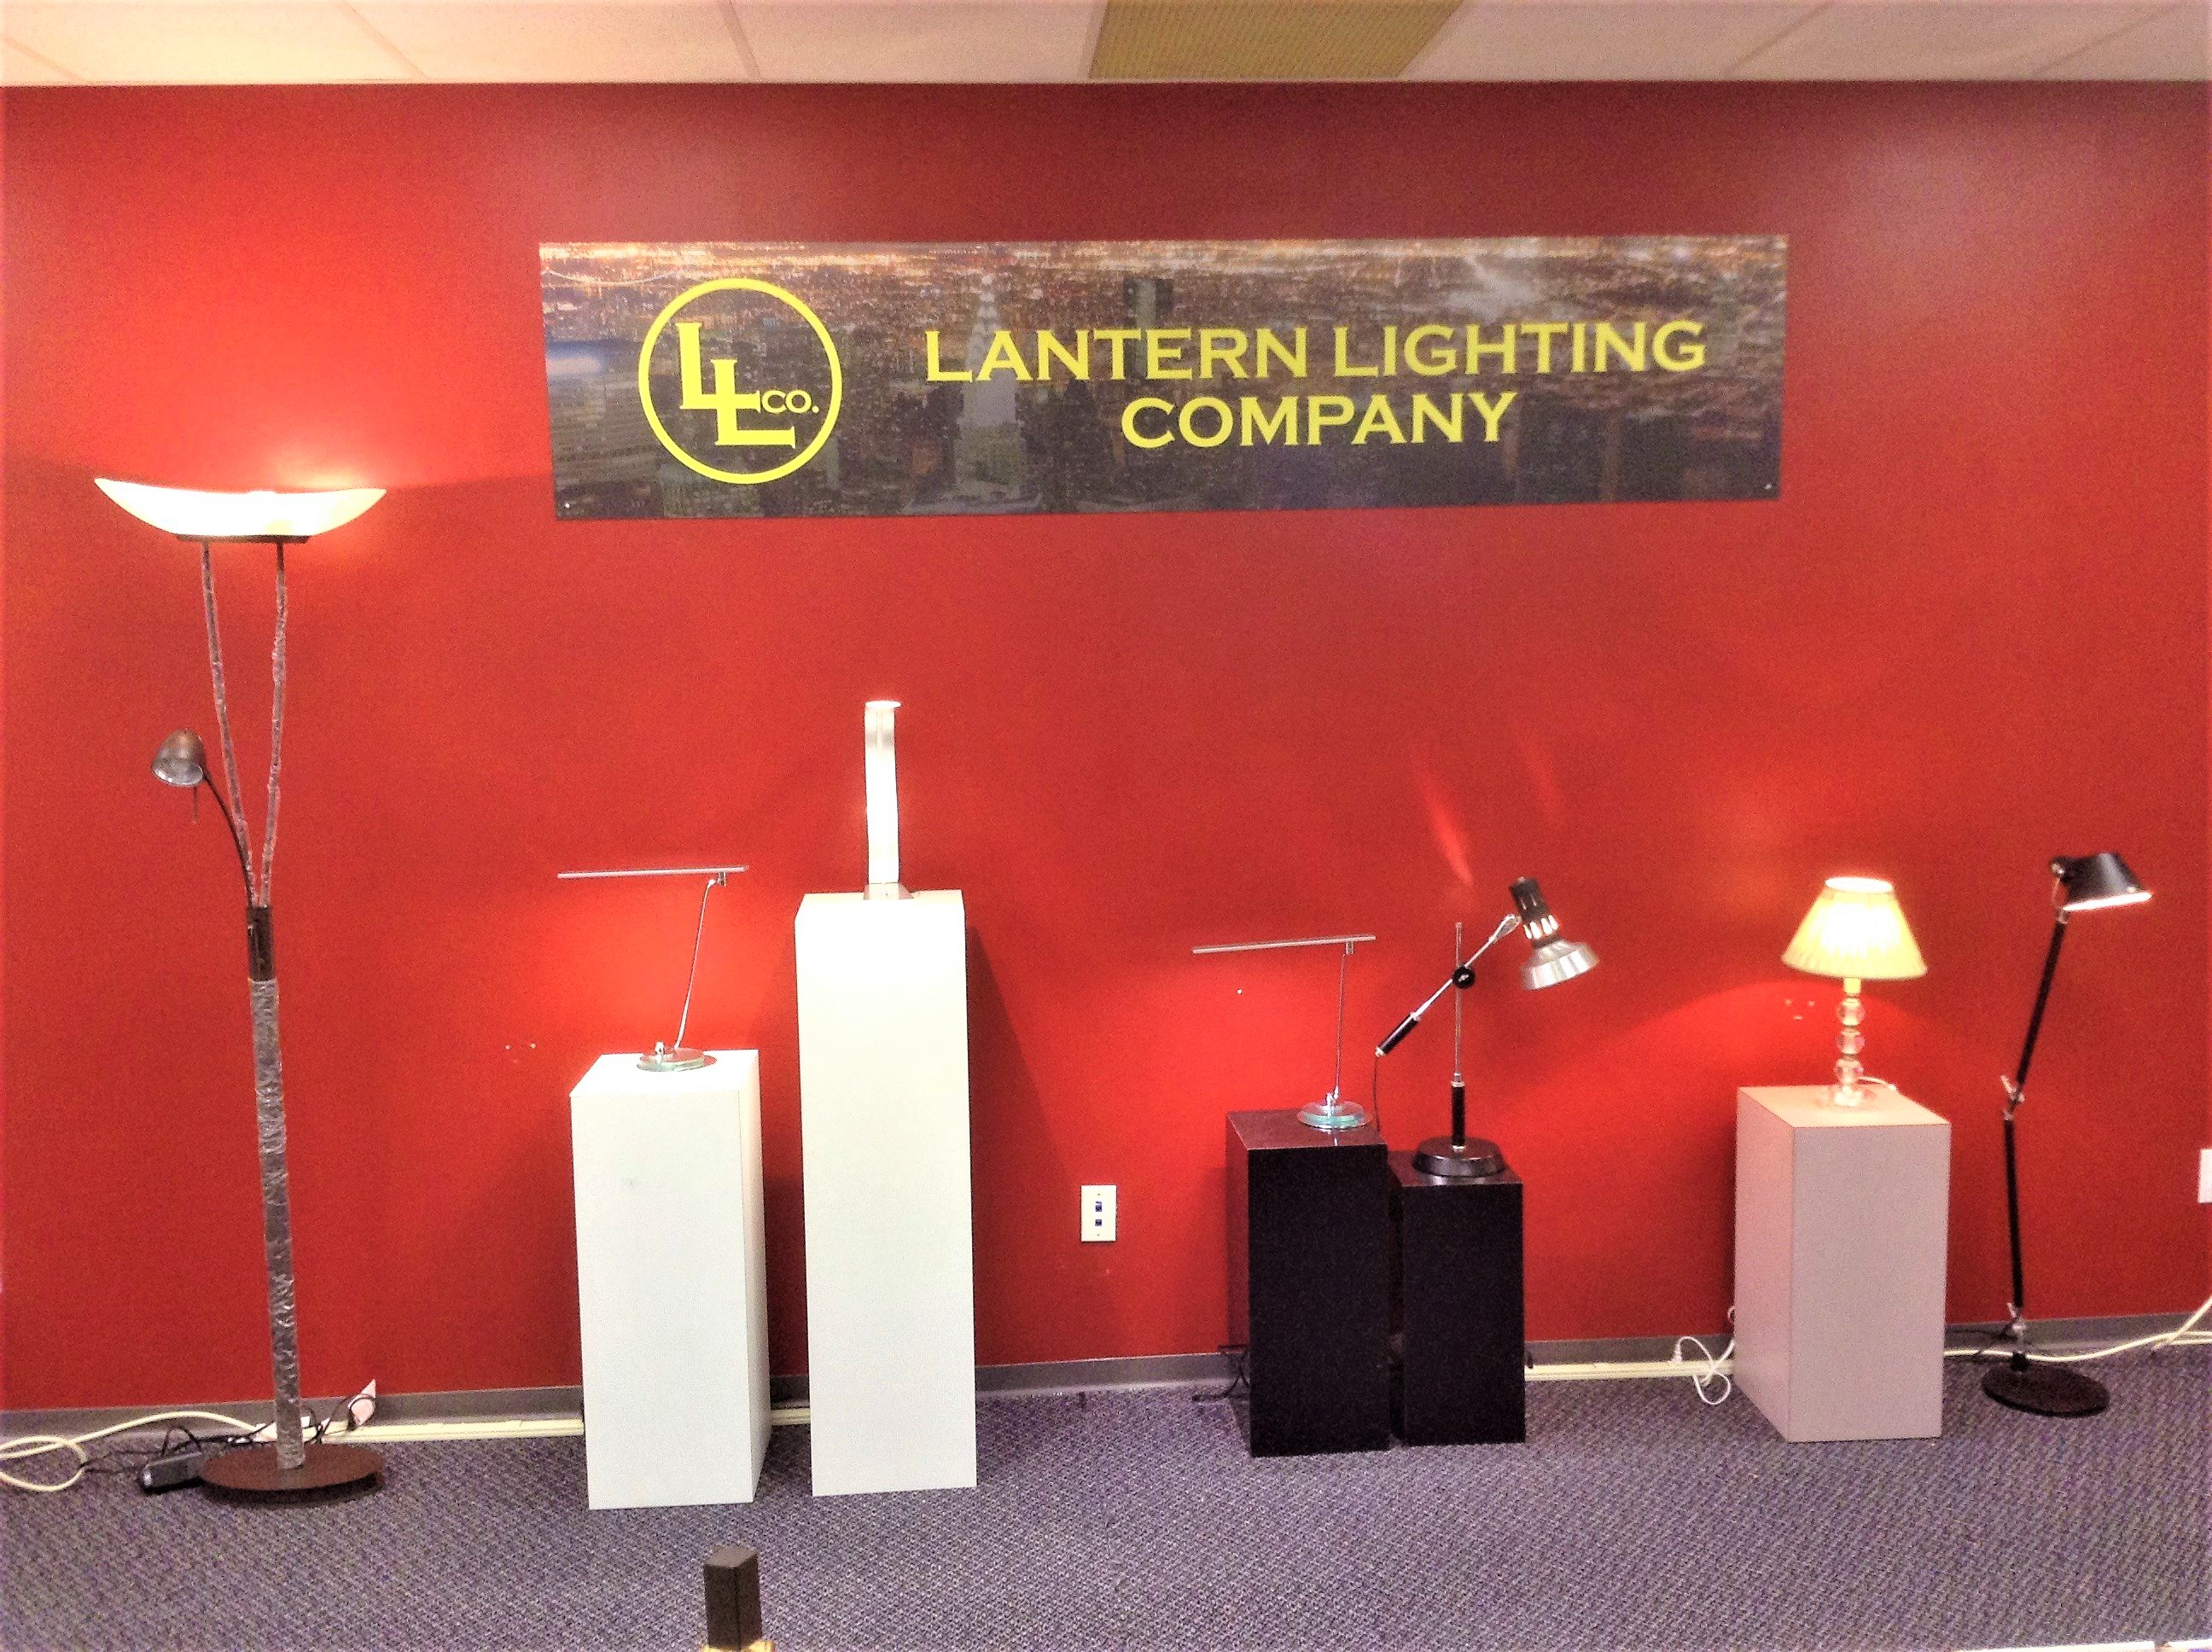 Take A Look At These Amazing Lighting Stores In Vancouver 7 Lighting Stores In Vancouver Take A Look At These Amazing Lighting Stores In Vancouver Take A Look At These Amazing Lighting Stores In Vancouver 7 1